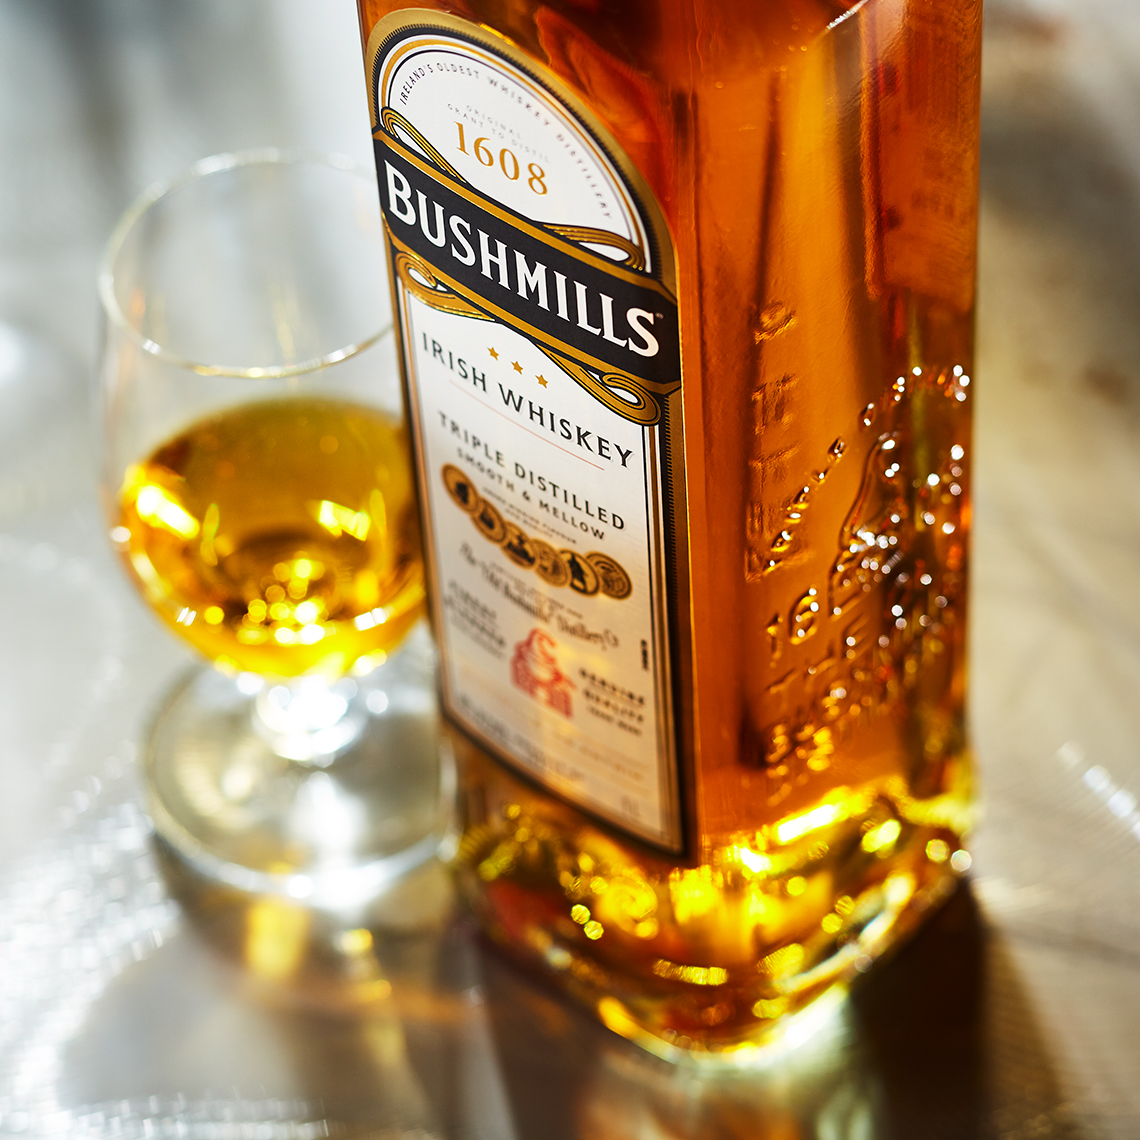 Jeff McLain Photography-Bushmills